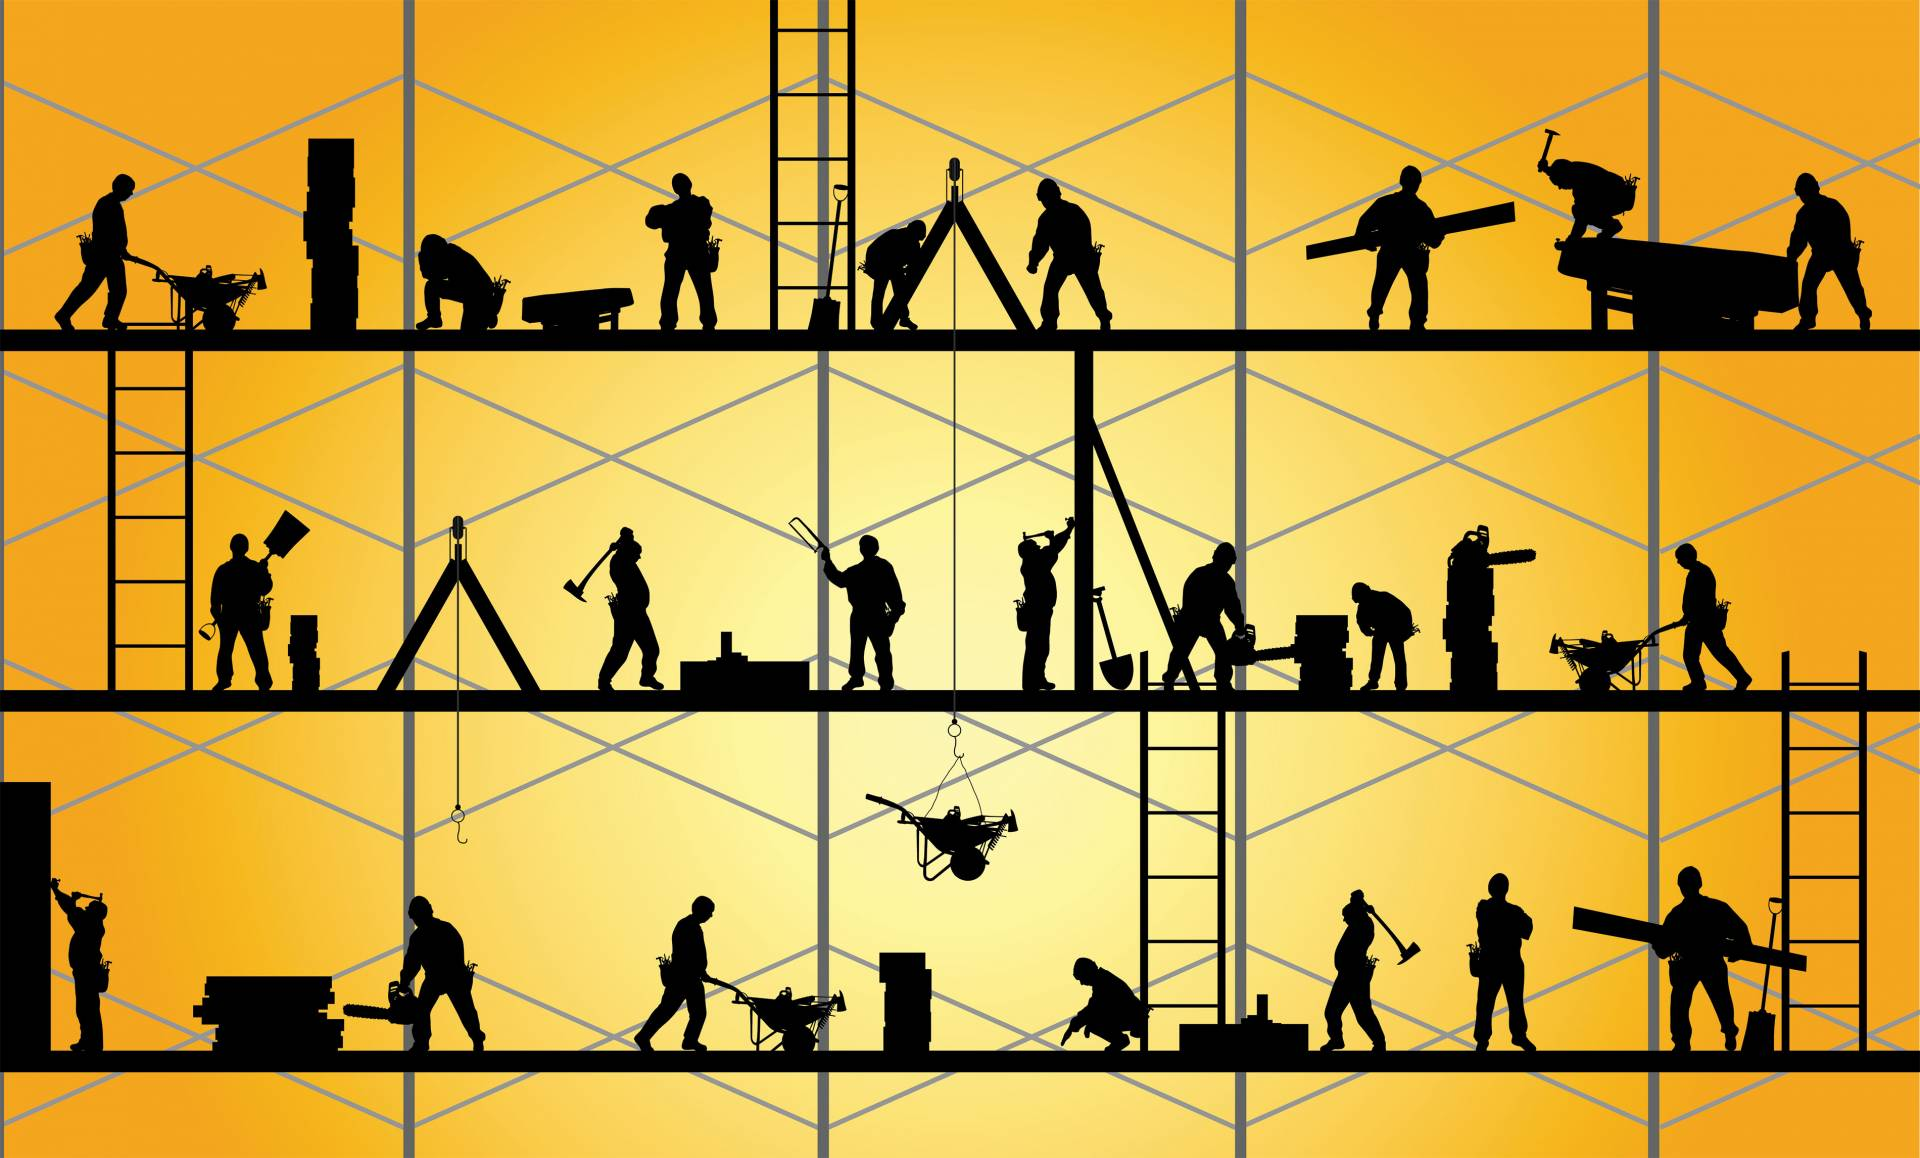 Illustrations of workers